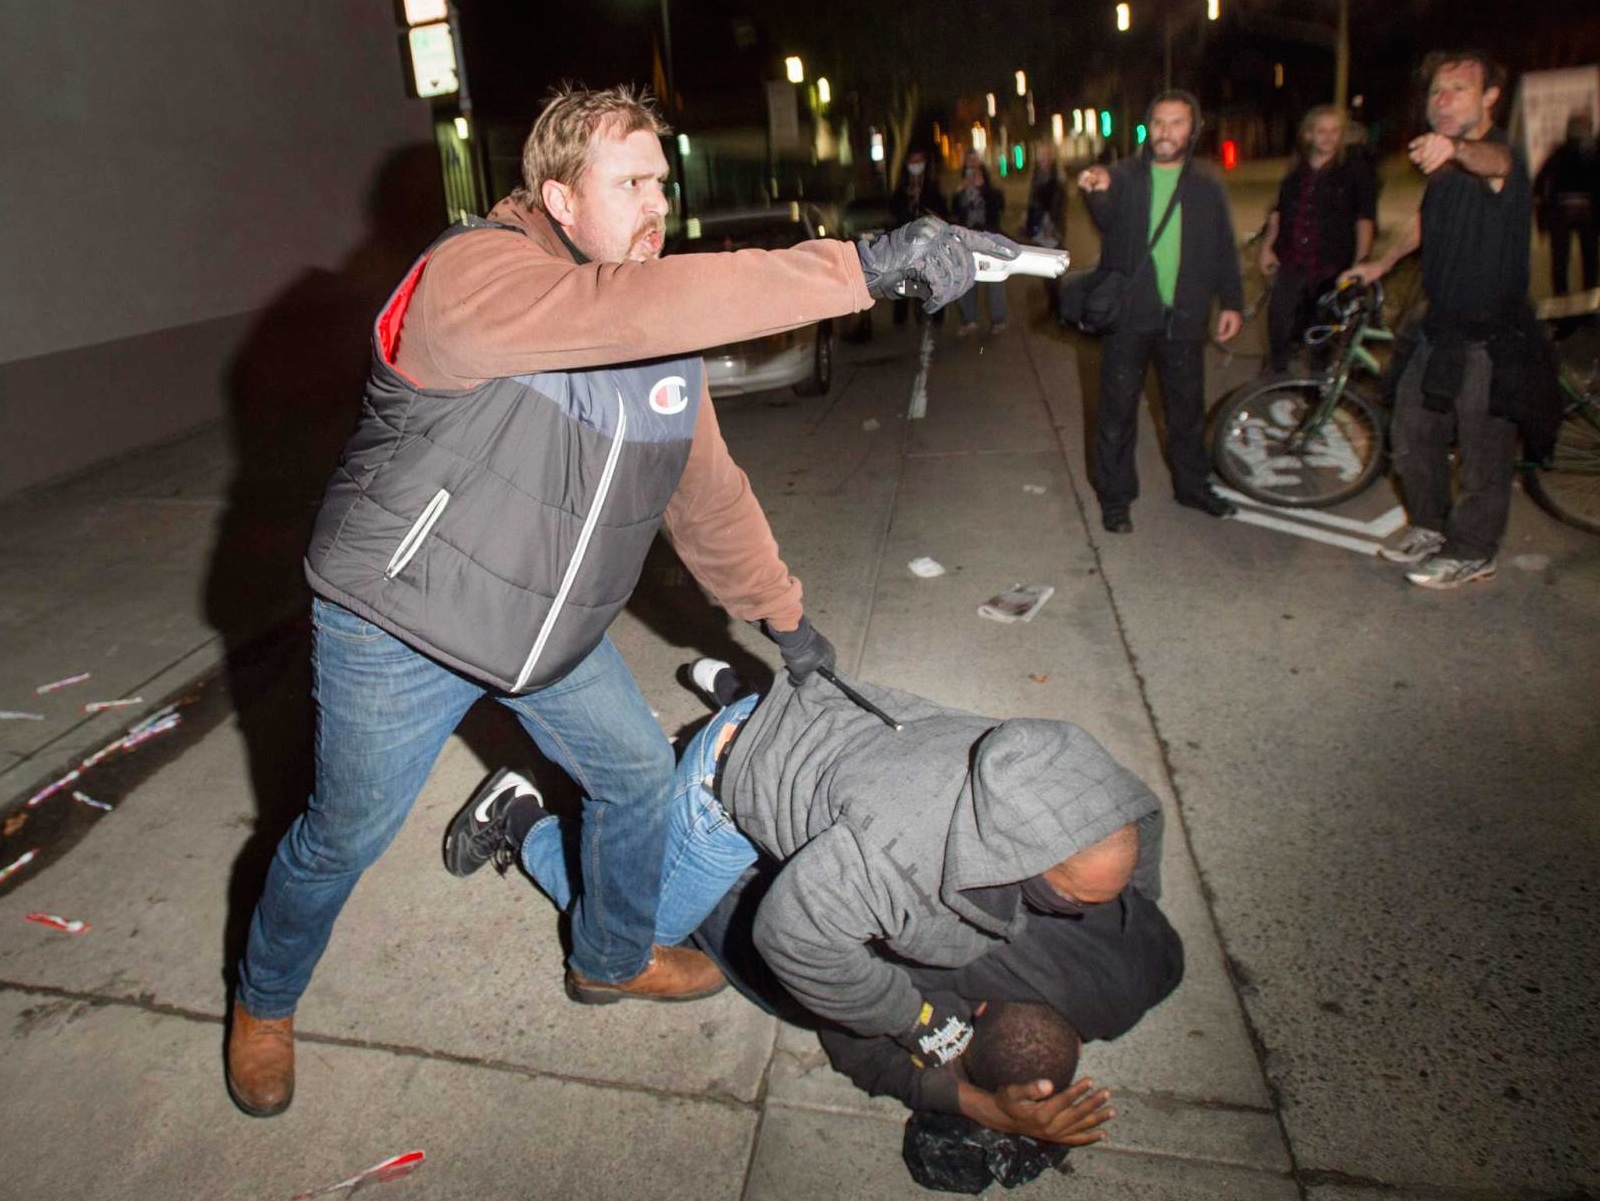 Undercover Officer Draws Gun on Oakland Protesters After Being Attacked